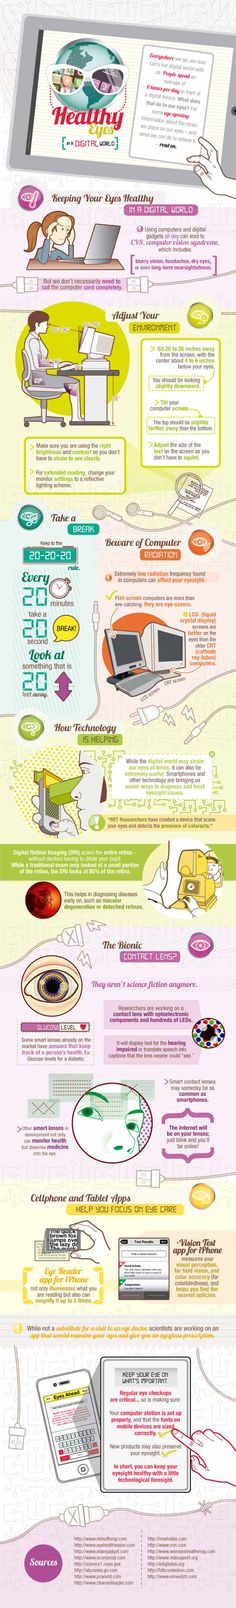 Healthy Eyes In A Digital World repinned by VisionQuest2020.org